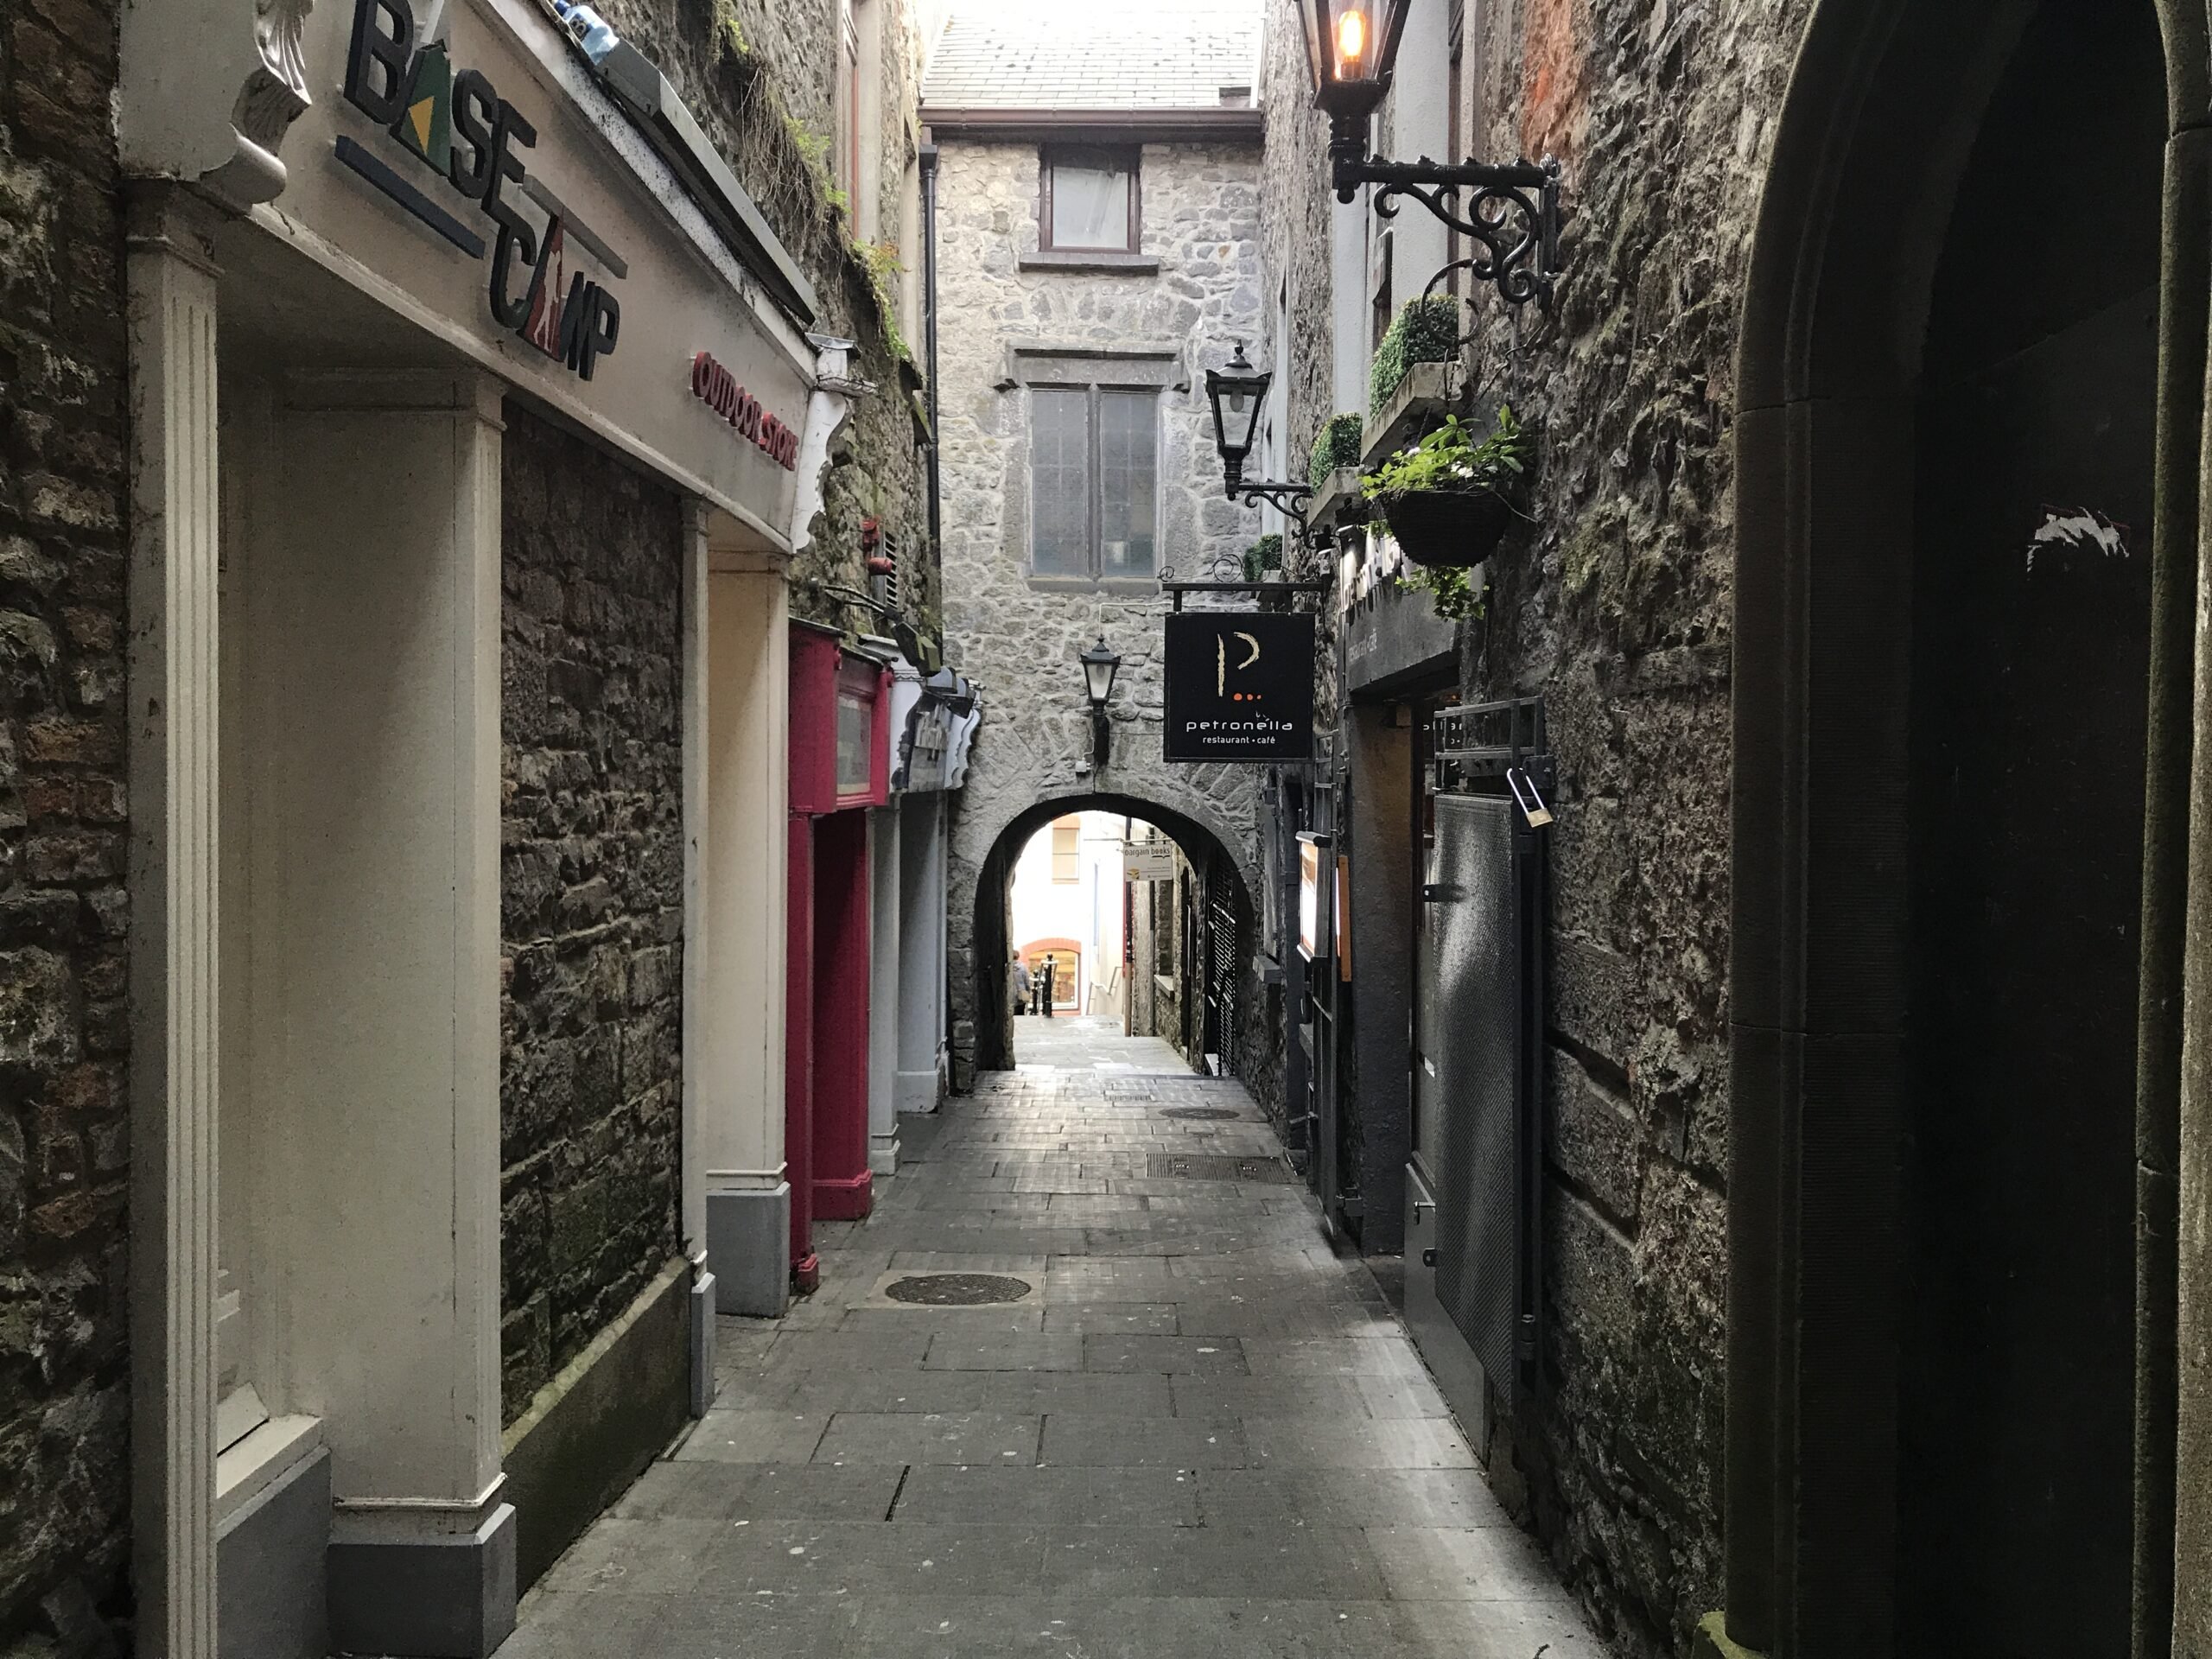 A Quick Guide To Navigating High St., Kilkenny's Notorious Shopping District